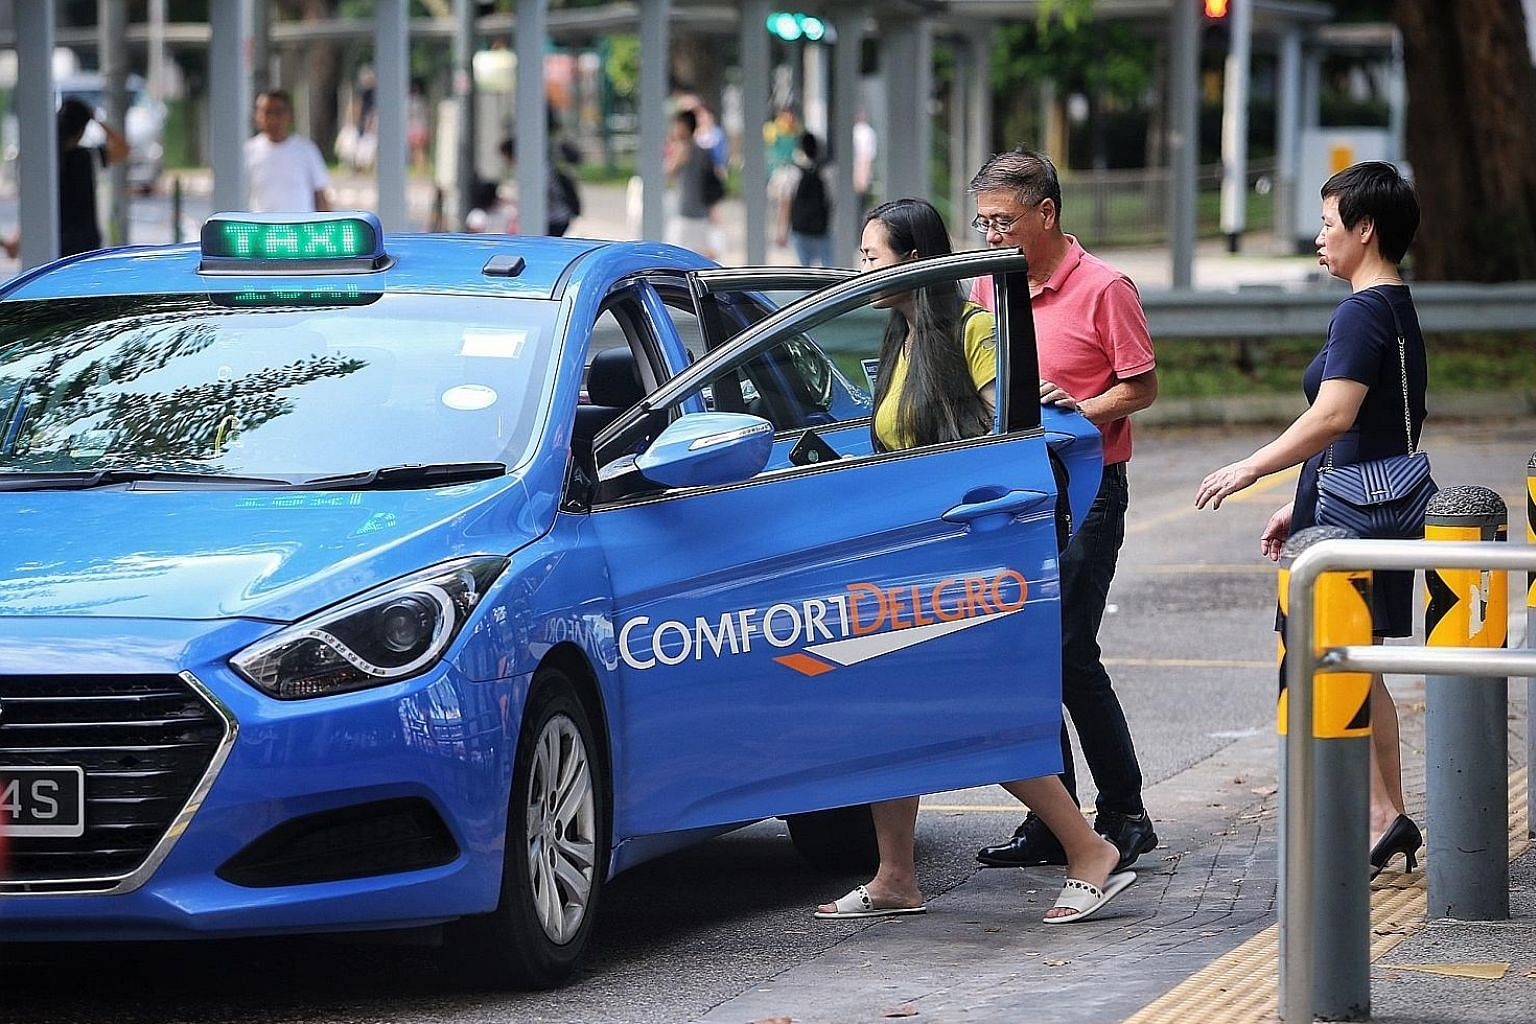 ComfortDelGro said bookings for its taxi business are holding steady. It will continue converting older diesel taxis, which have relatively high certificate of entitlement premiums, to petrol-electric hybrid models. This will result in tax and deprec